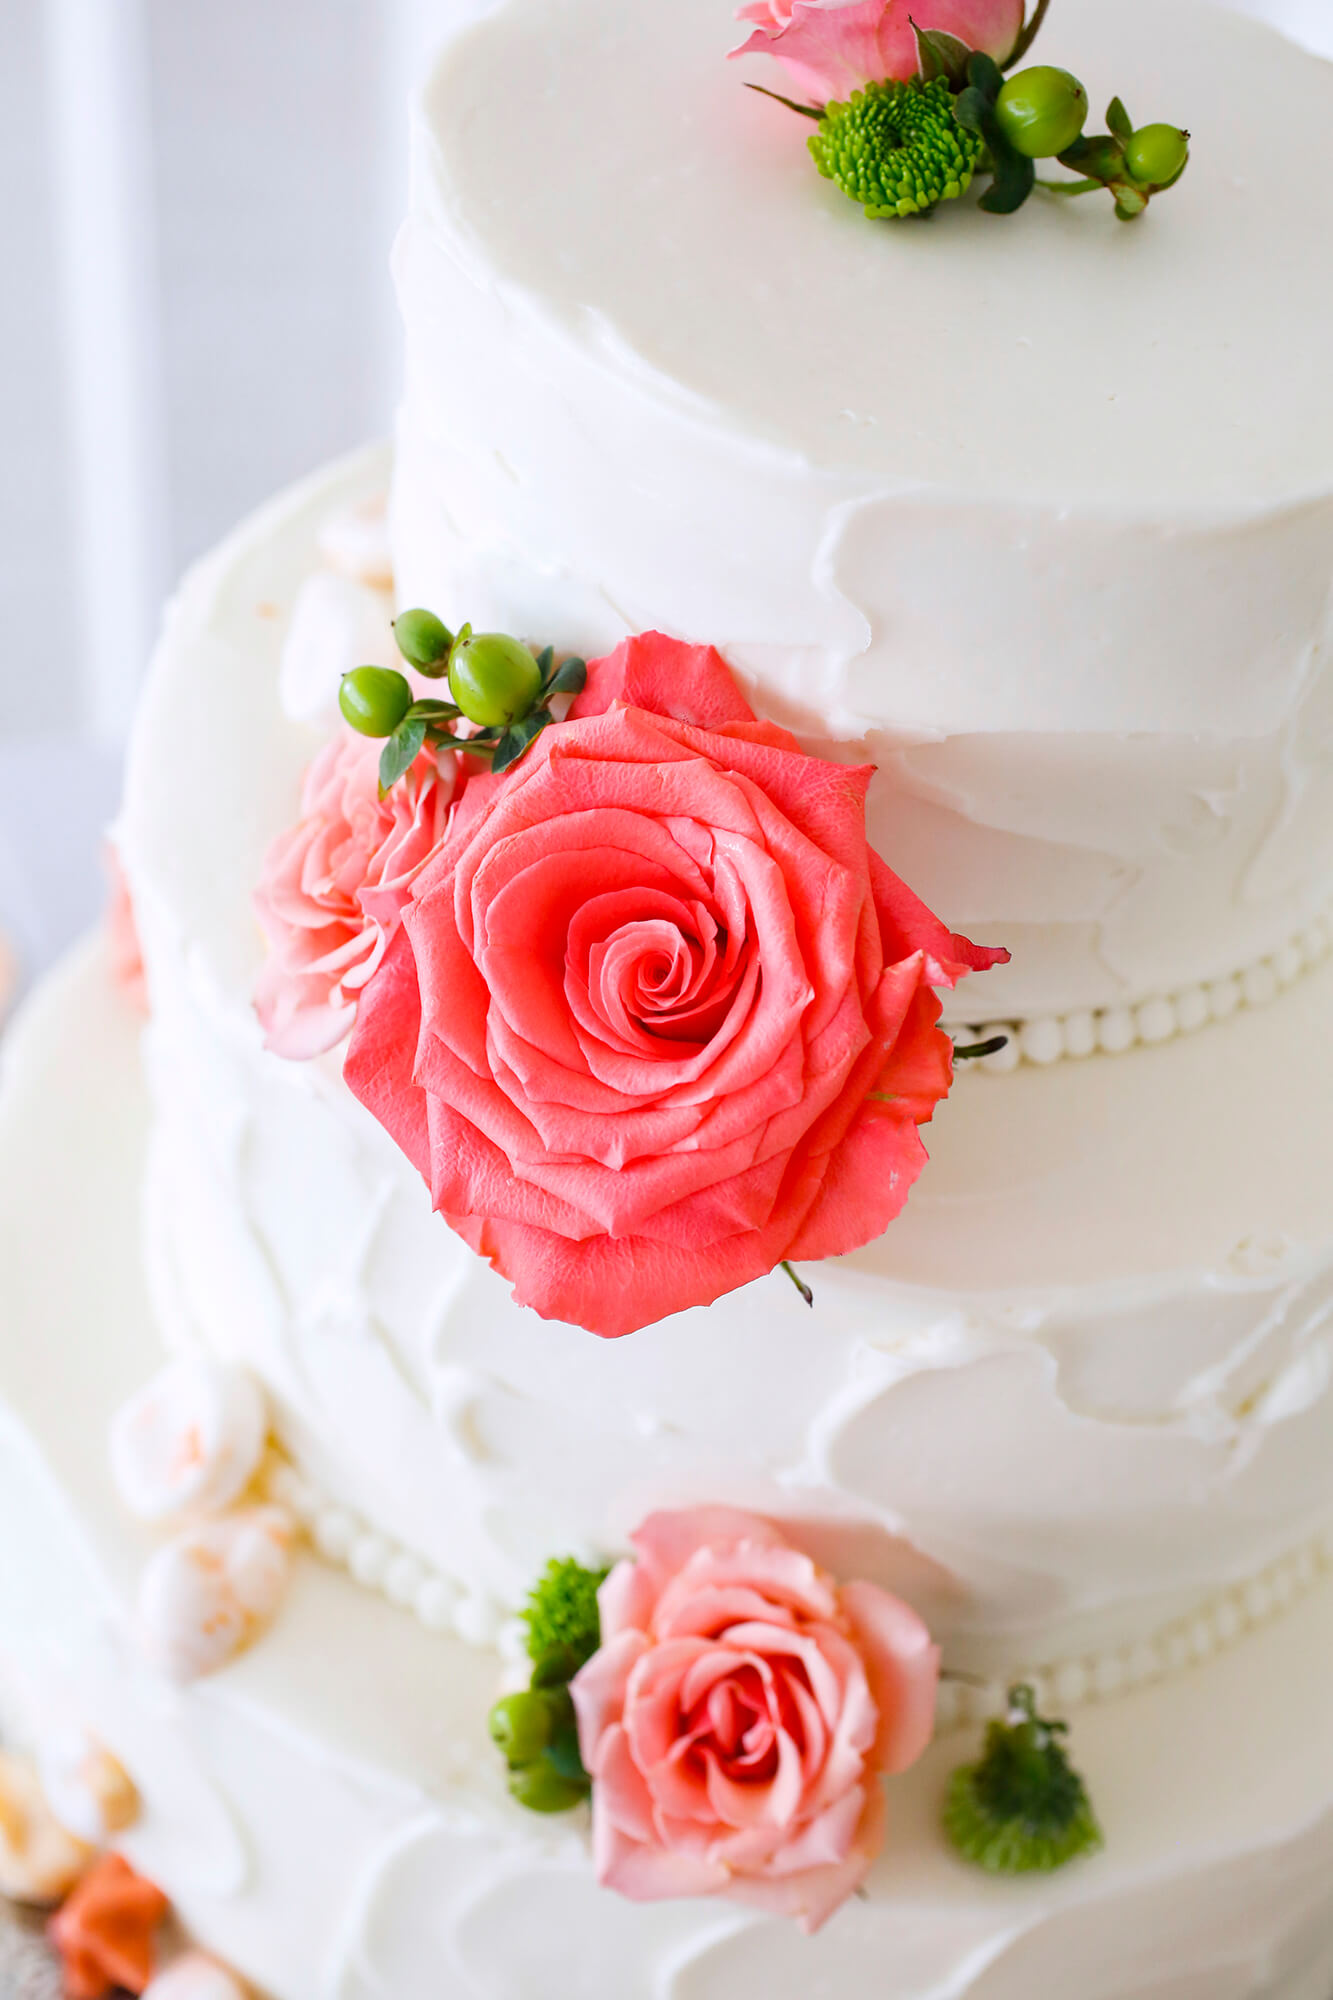 Wedding photography of the pink flowers on a cake